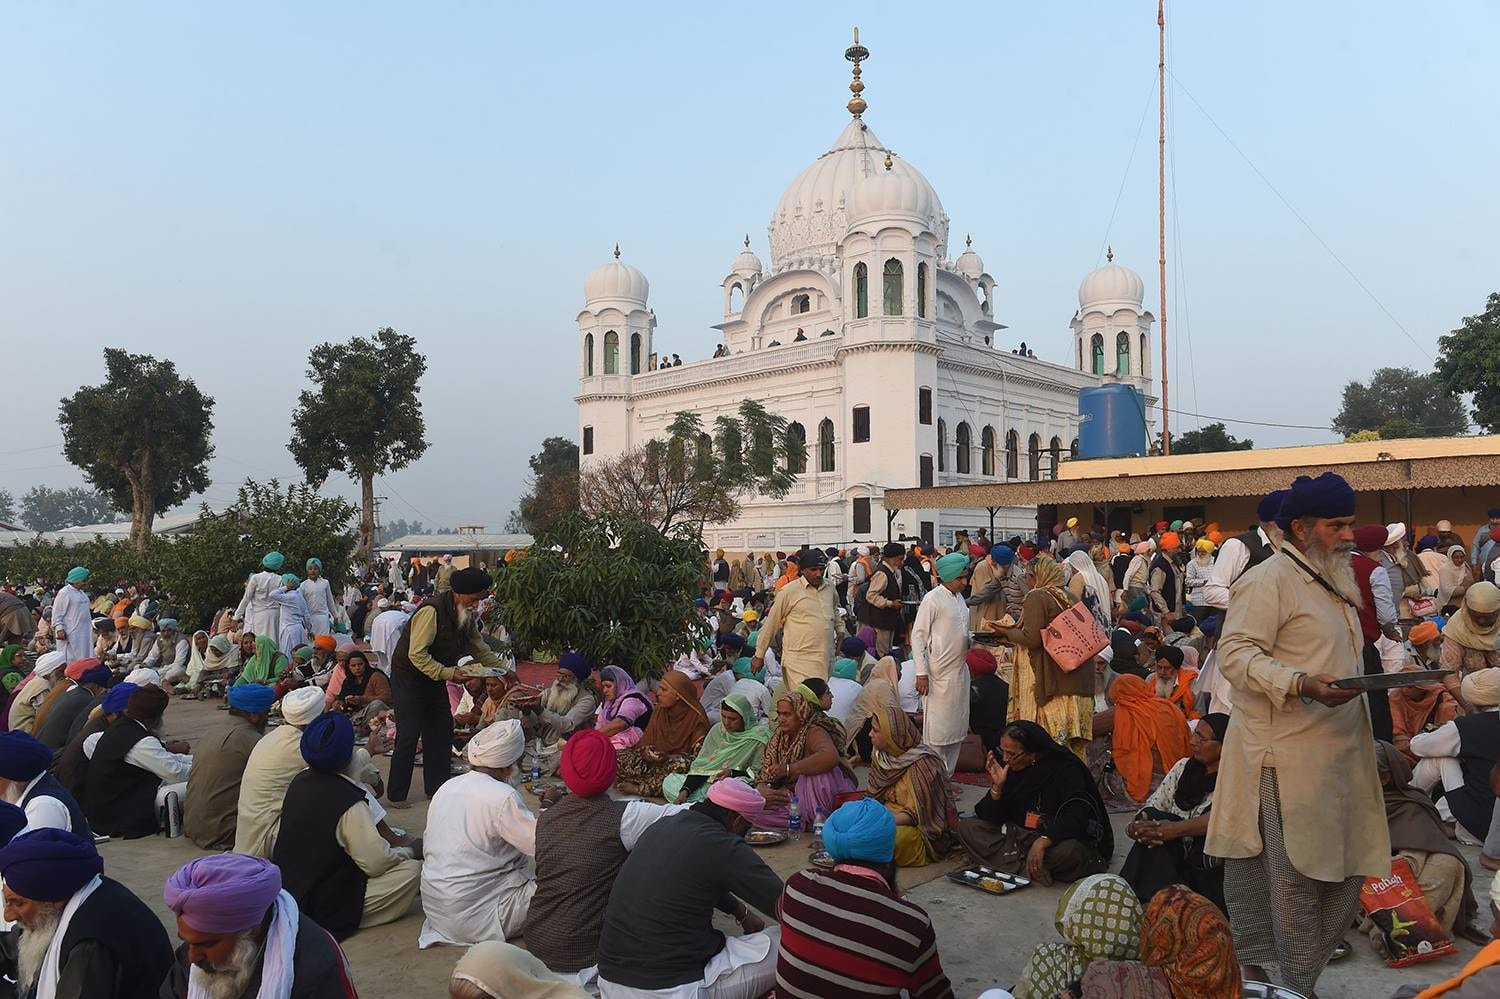 Sikh pilgrims wait for food at the shrine of their spiritual leader Guru Nanak Dev in Kartarpur. — AP